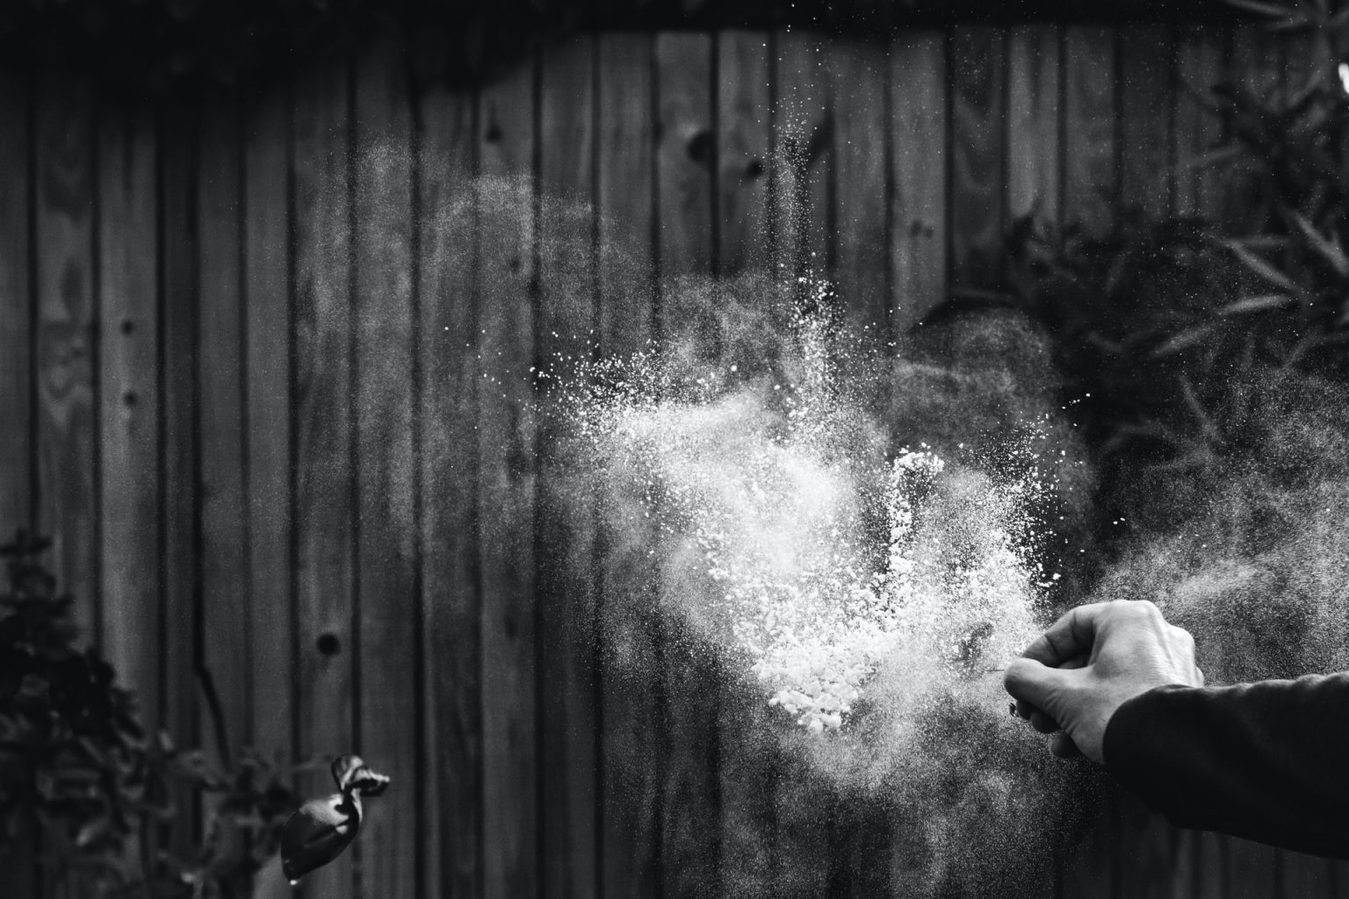 Black and white photography experiment with powder